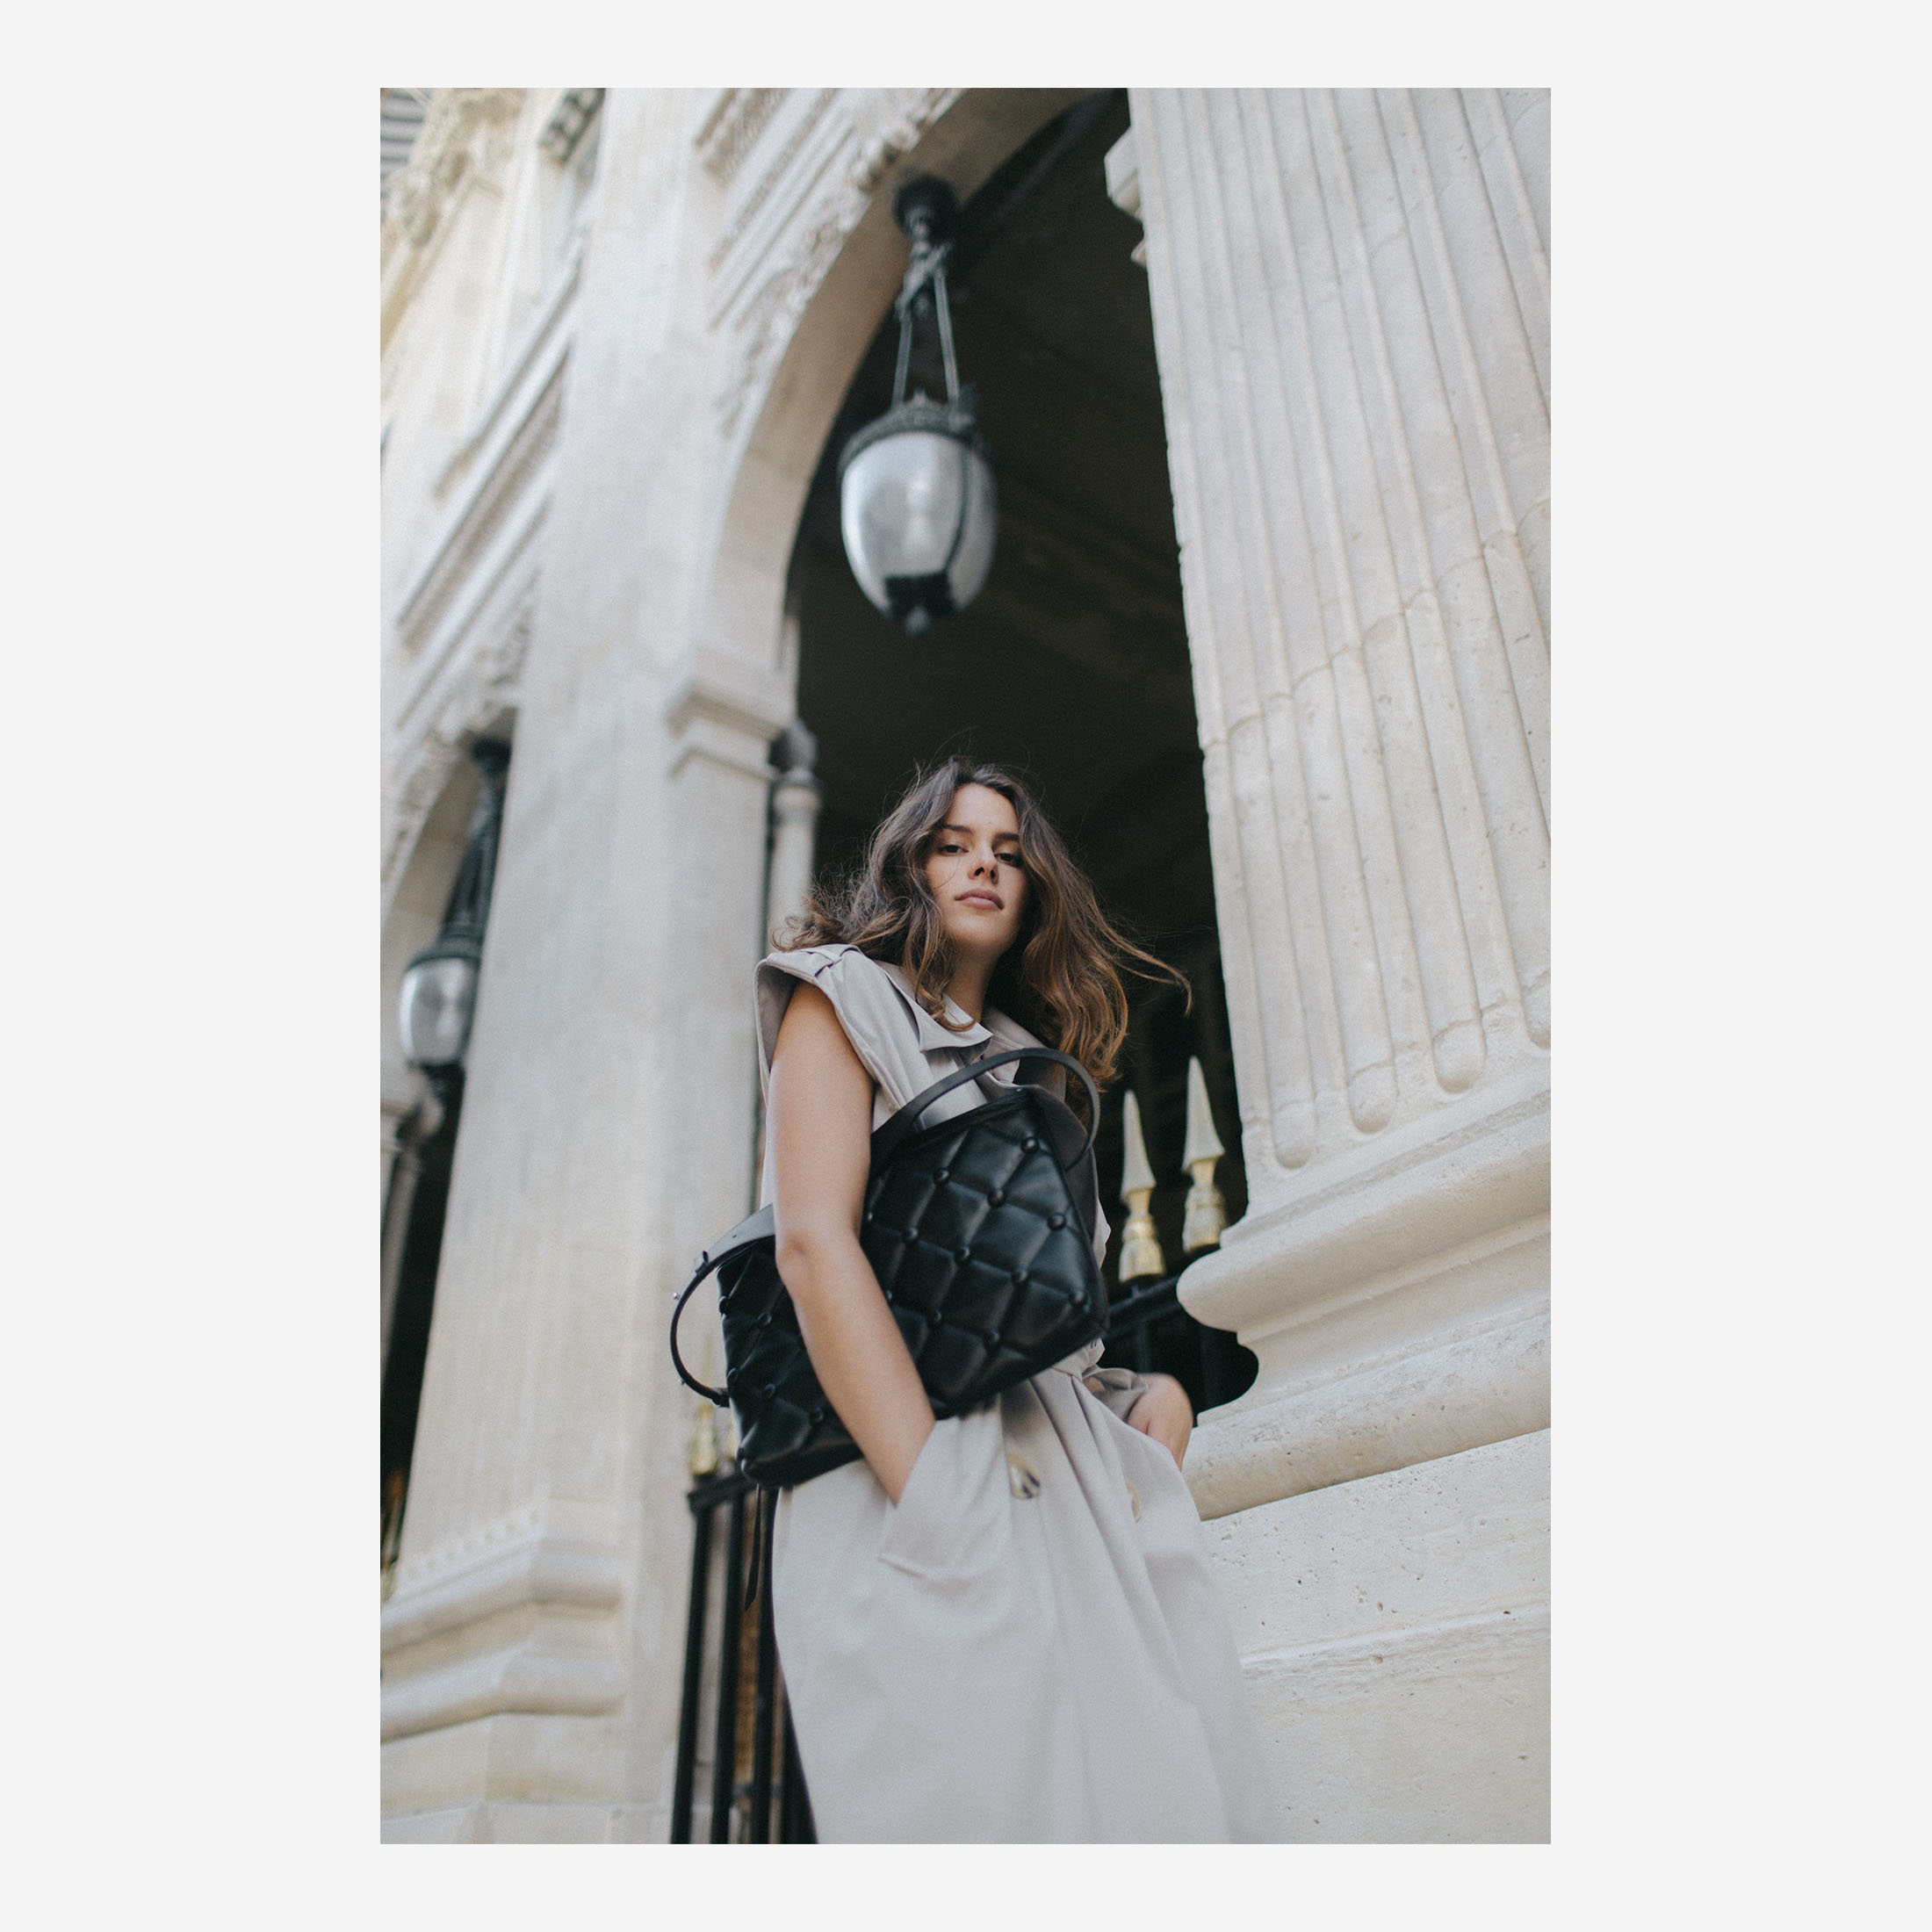 Model with Laimushka black leather oversized clutch in Paris, Palais Royal